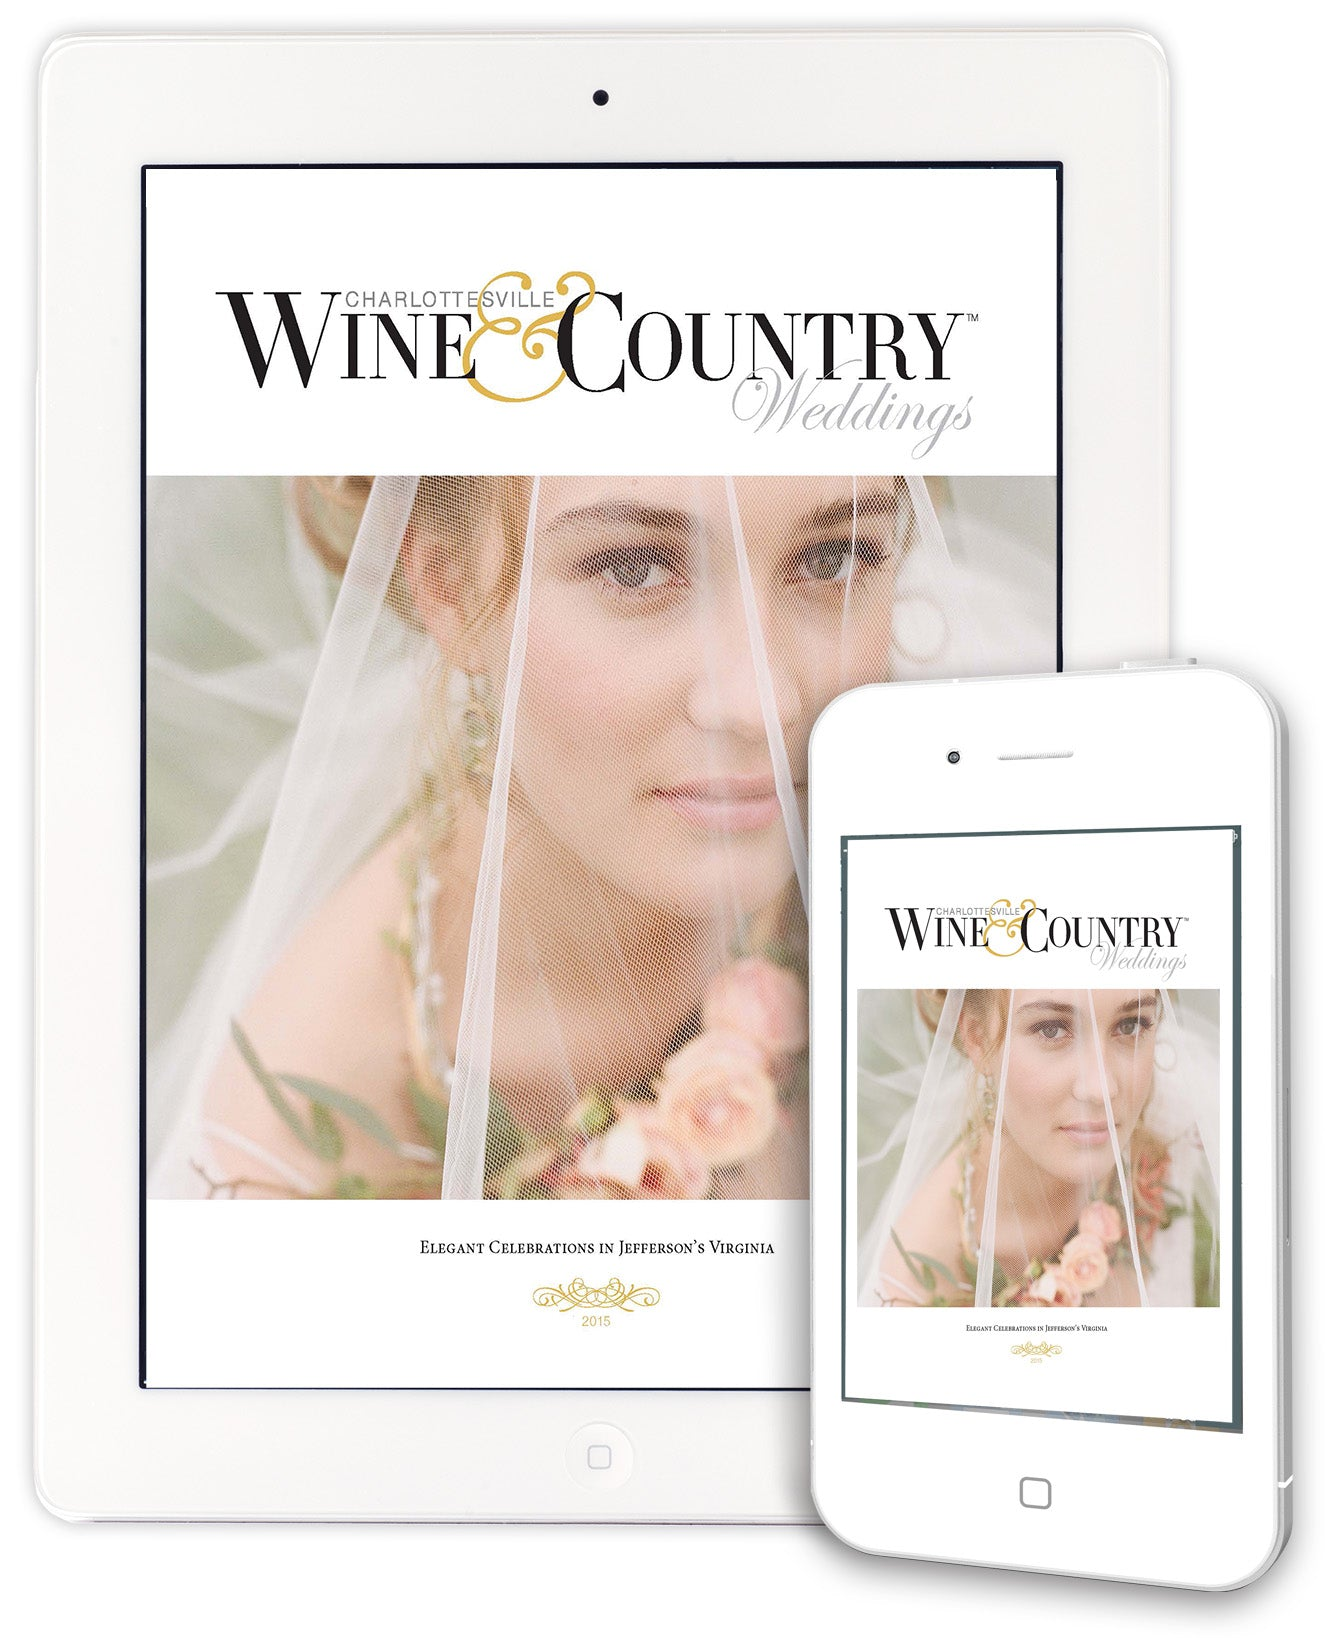 W&C Weddings Vol. 1 DIGITAL - SINGLE ISSUE